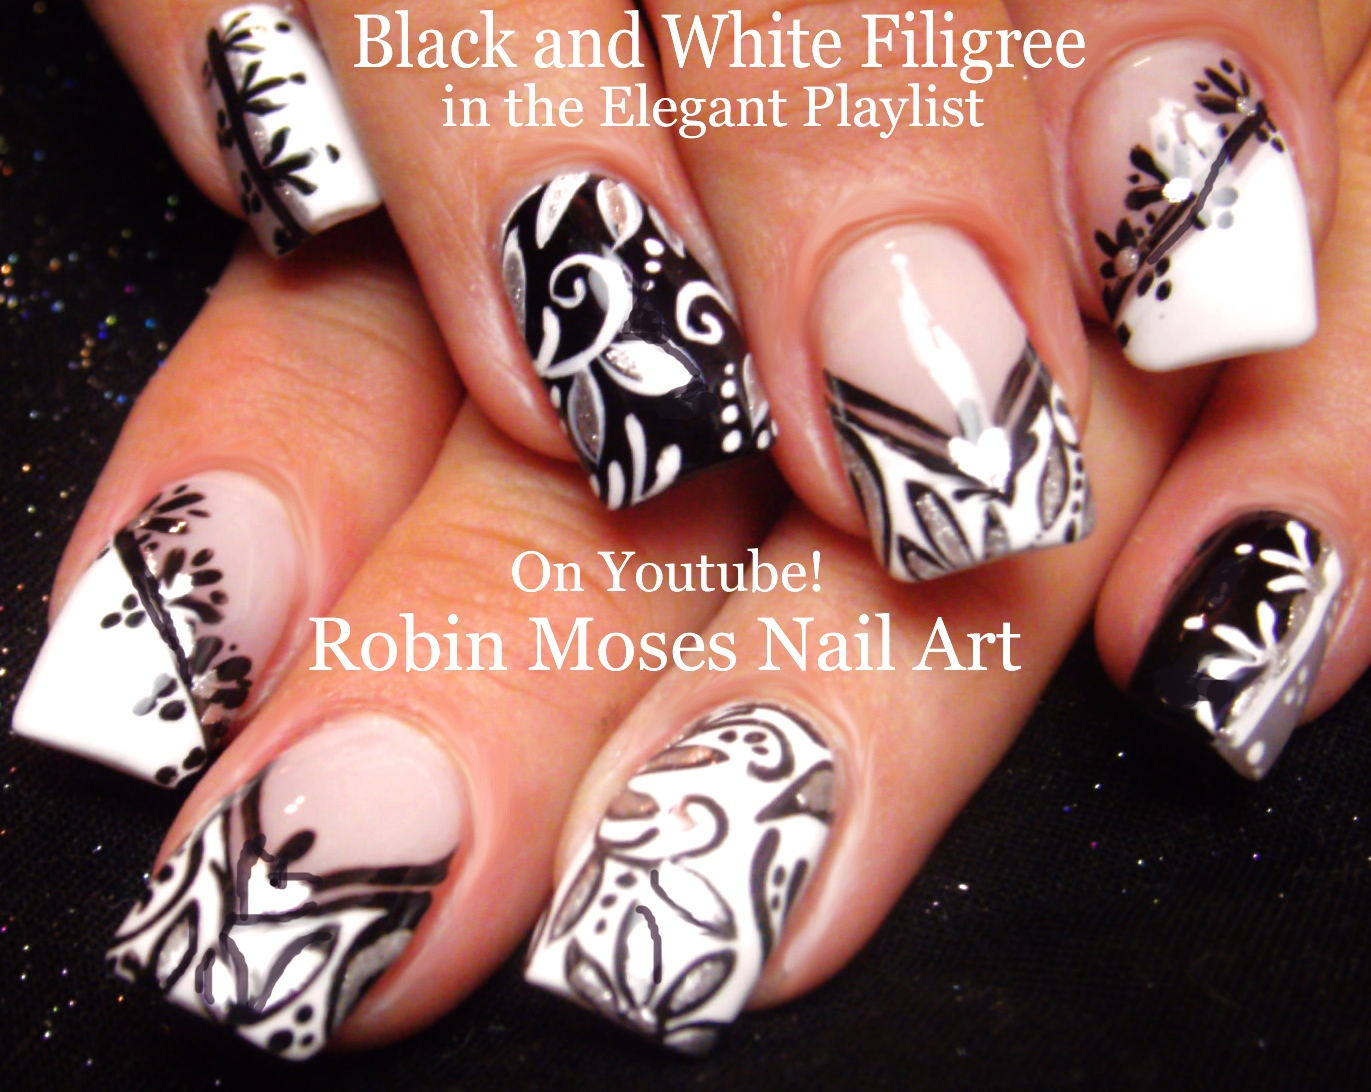 Robin moses nail art black and white nail art design tutorials black and white nail art design tutorials black and white design black and white filigree design fall nails 2015 fall trends prinsesfo Images